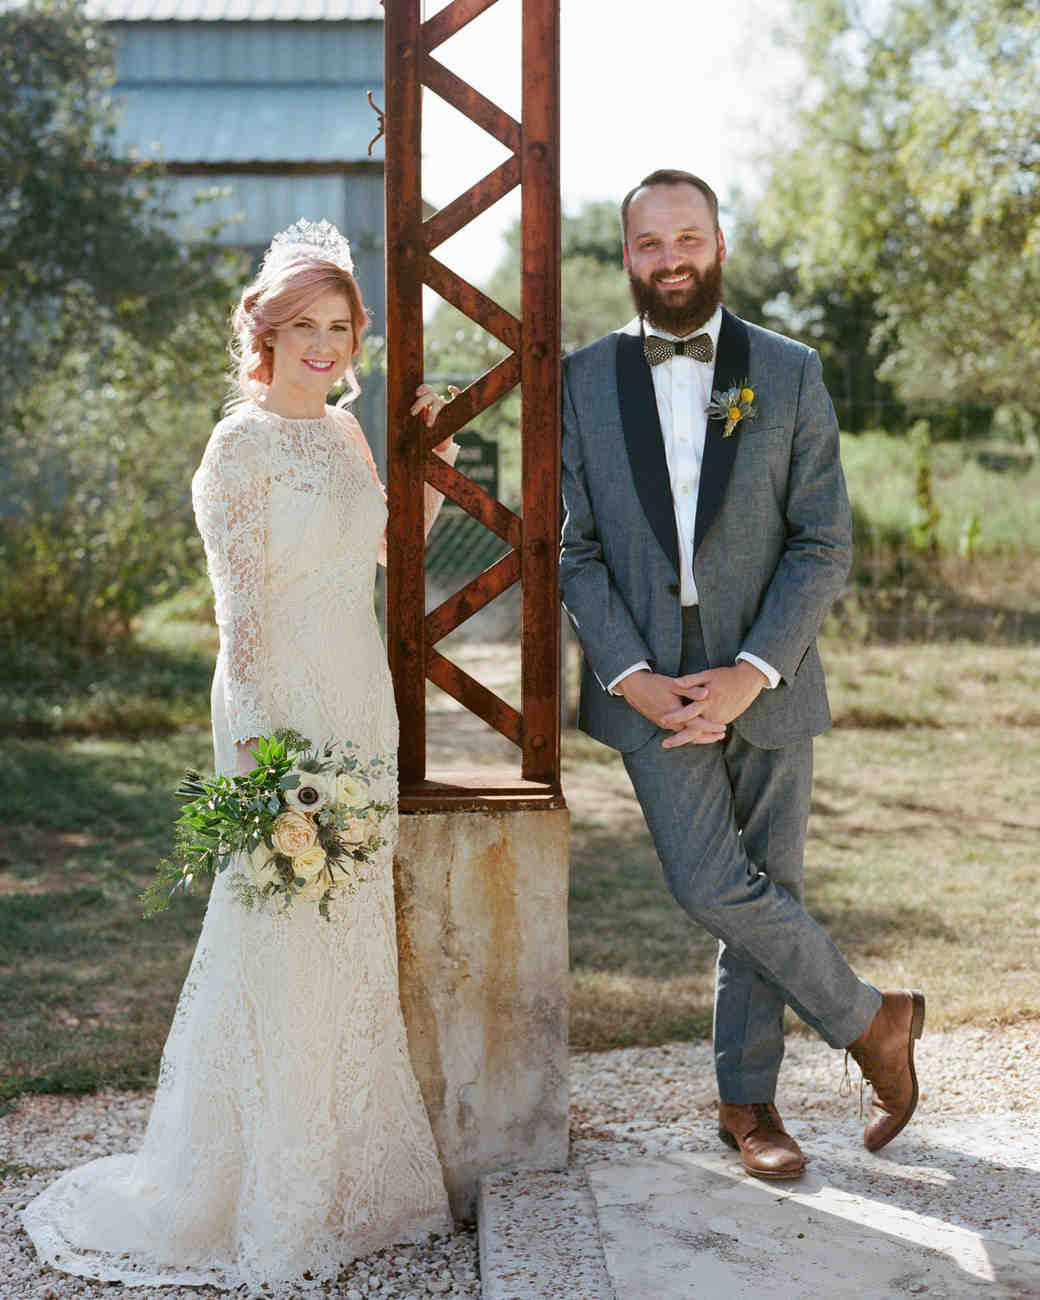 An Eclectic Wedding in Texas with Personalized Touches